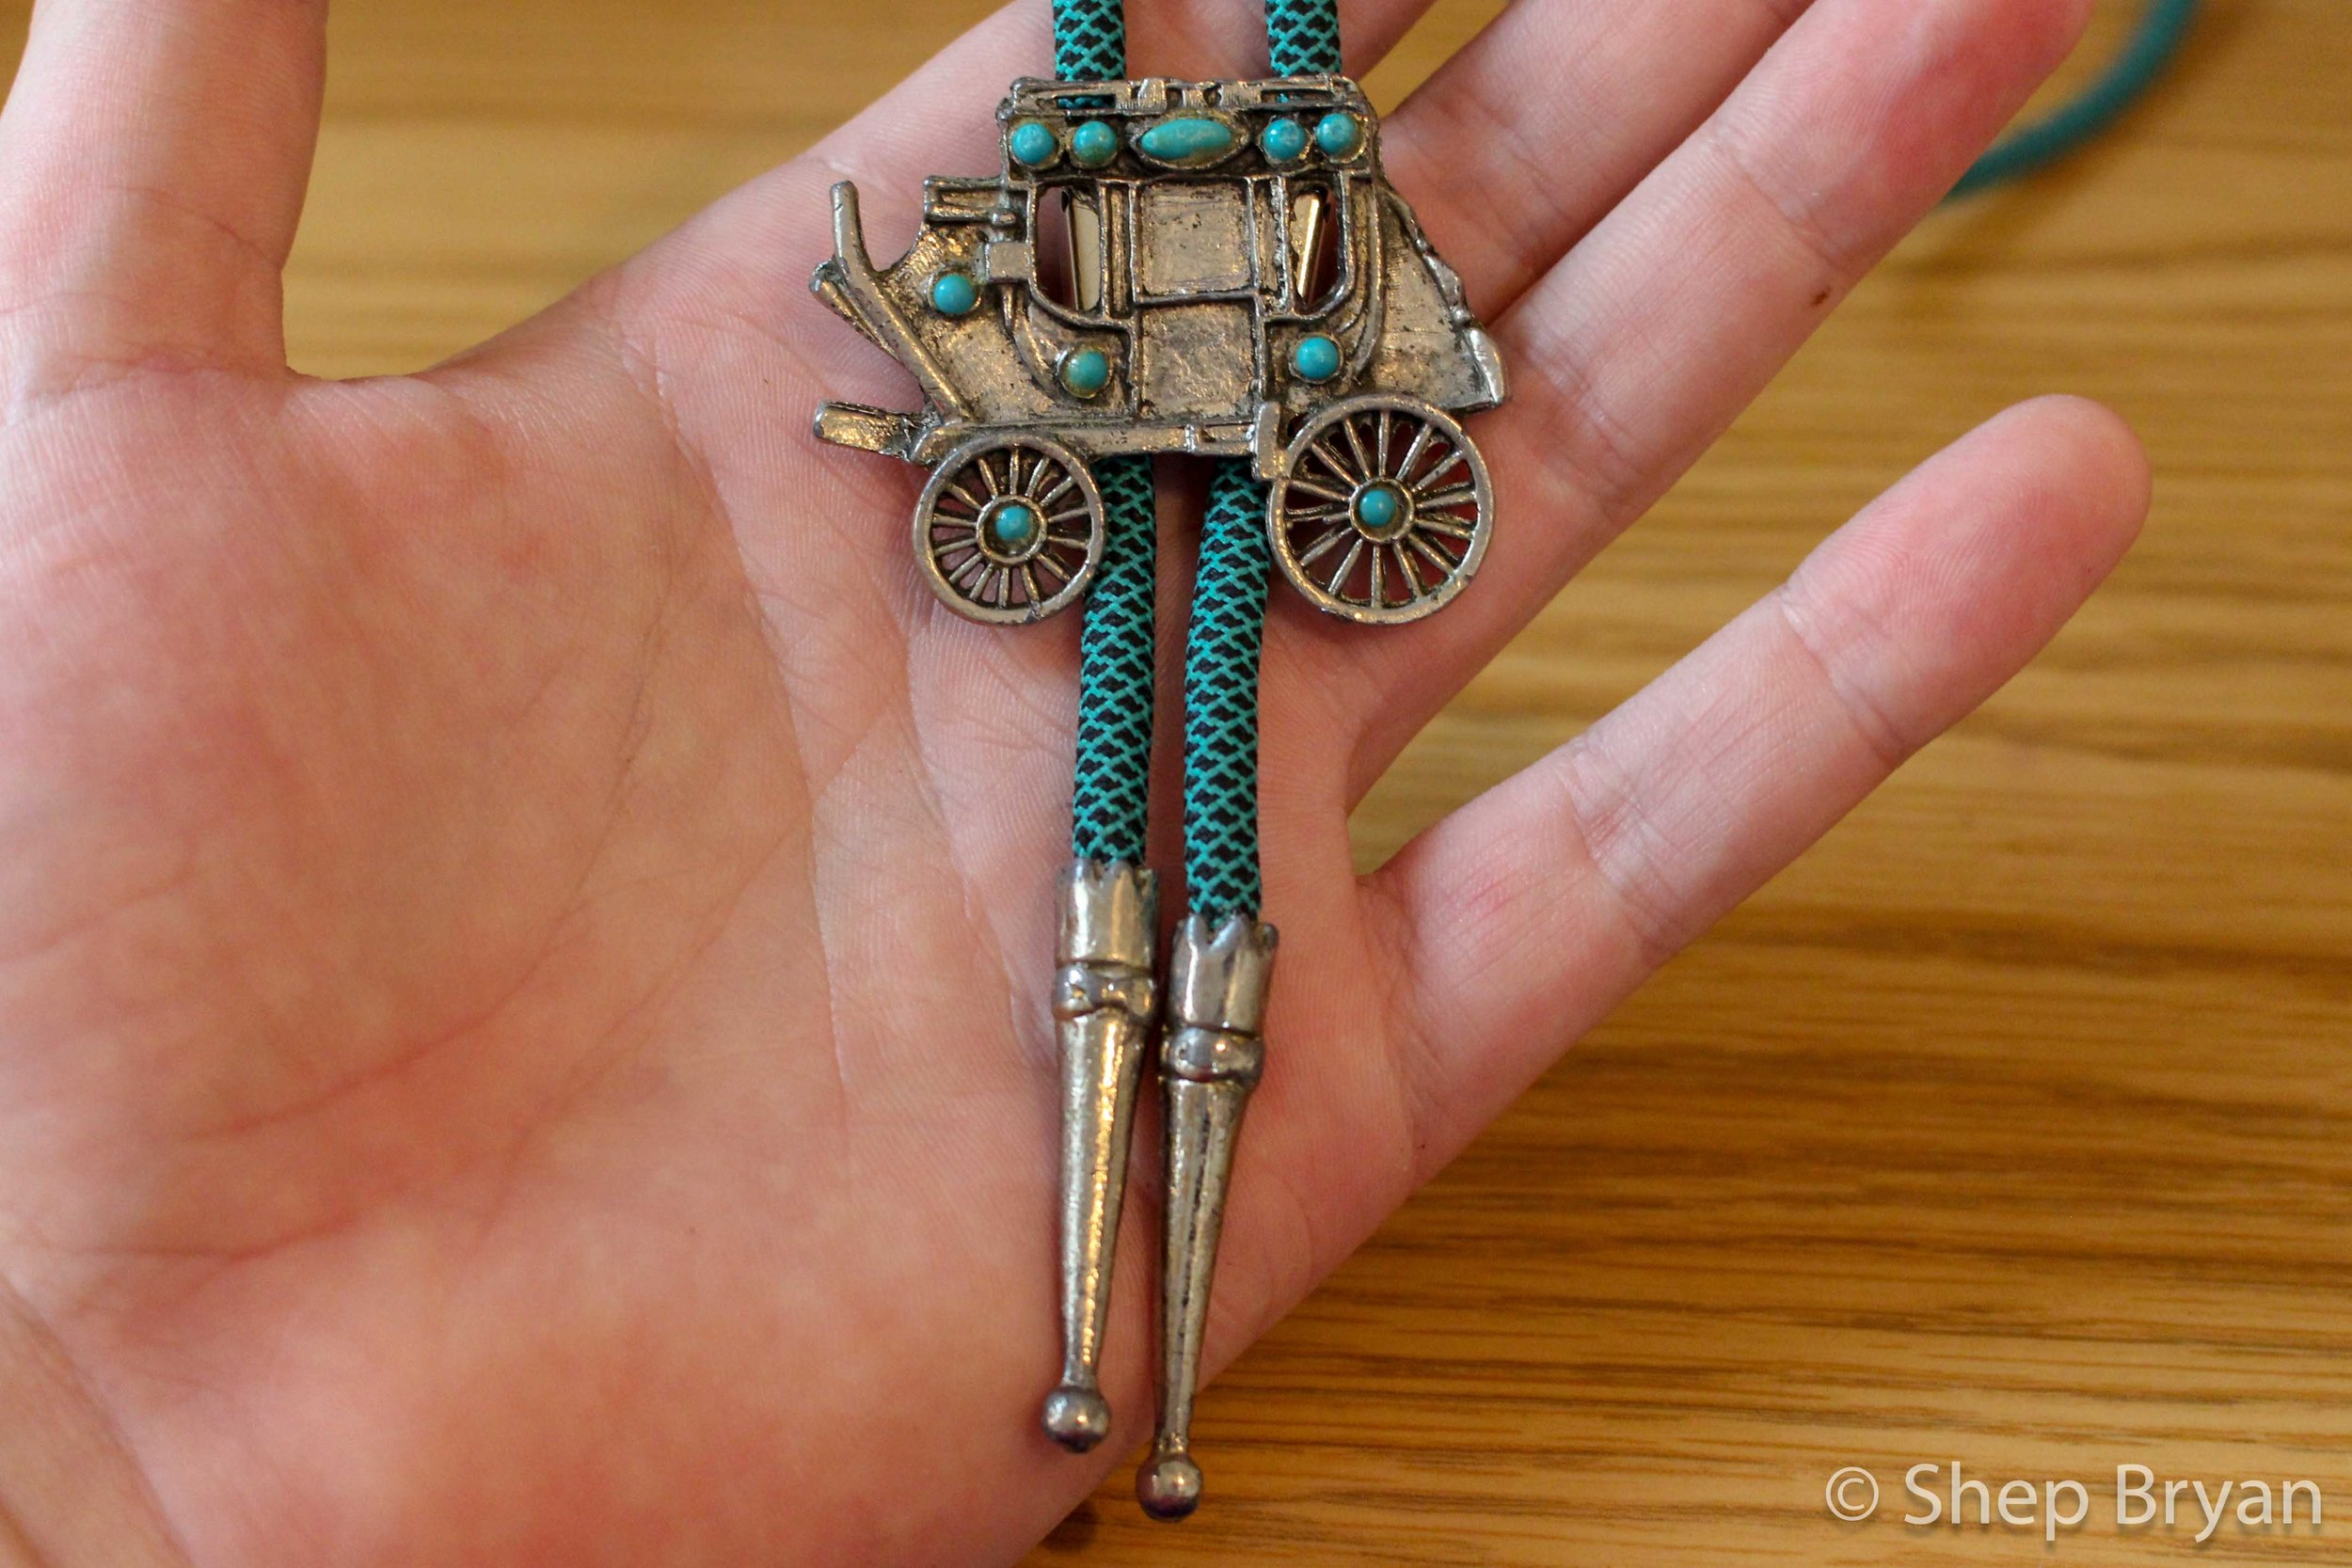 Repairing a vintage bolo tie - the finished product